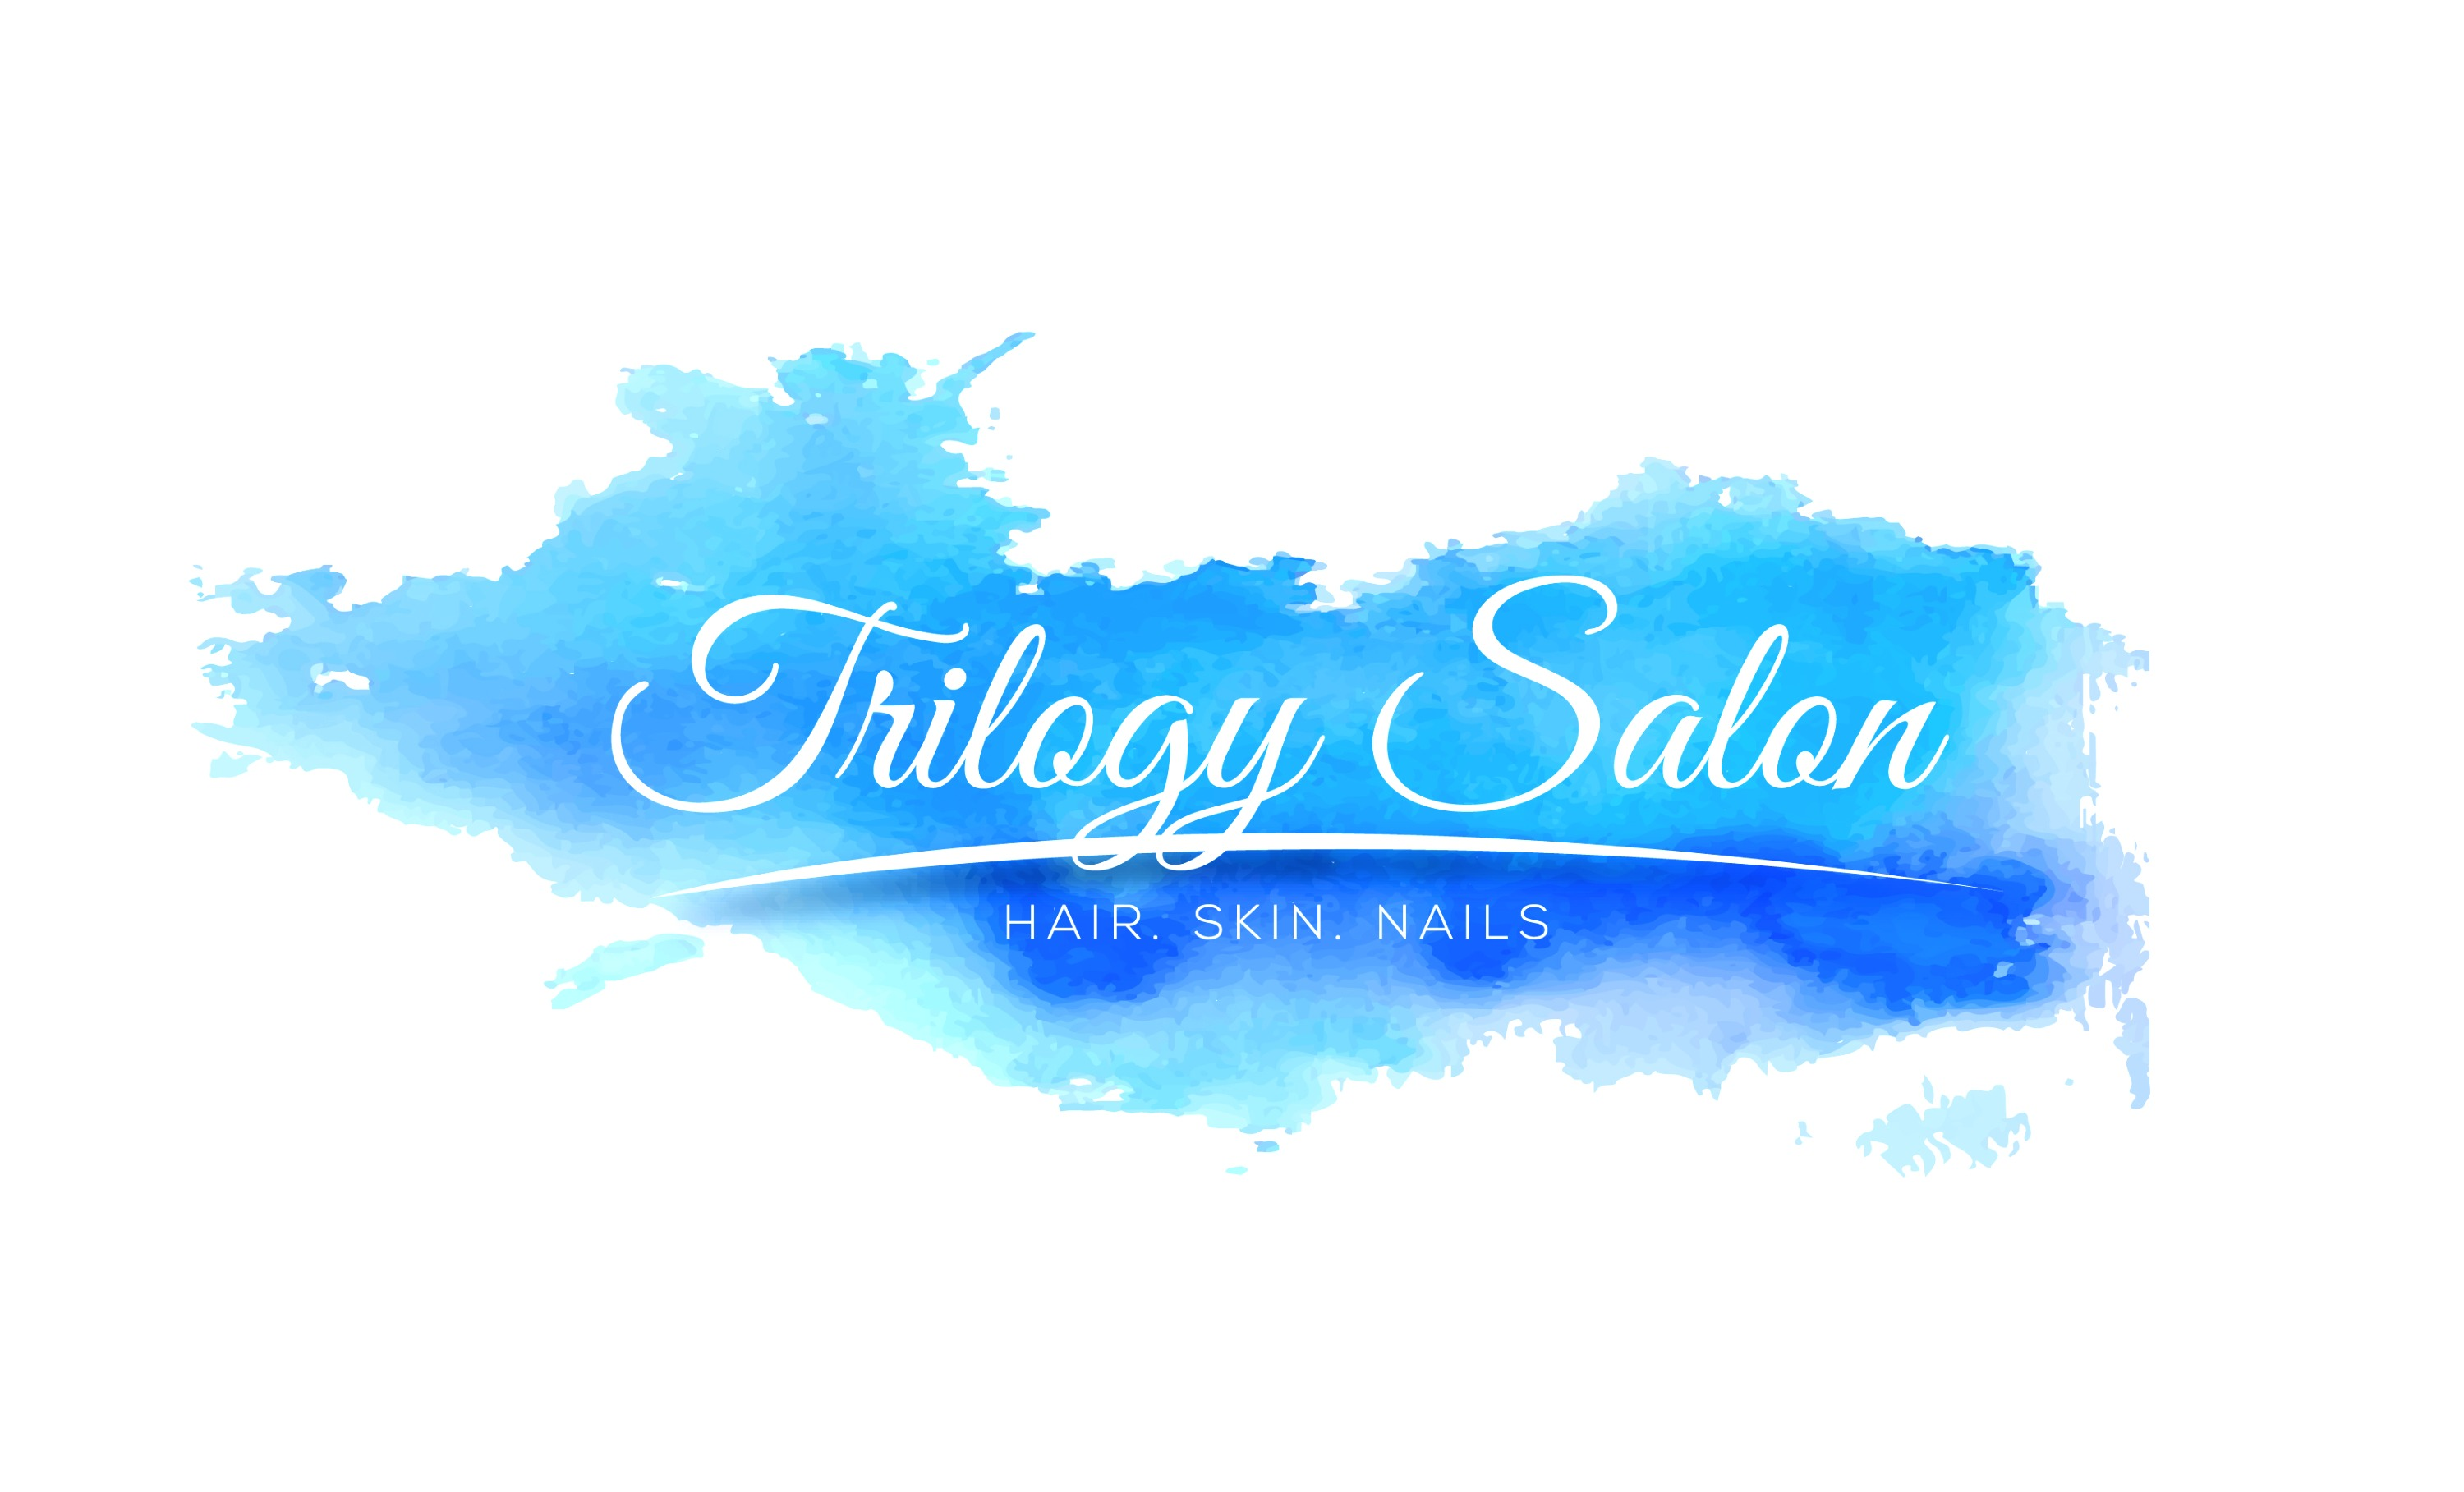 Trilogy%20Salon-01_edited.jpg